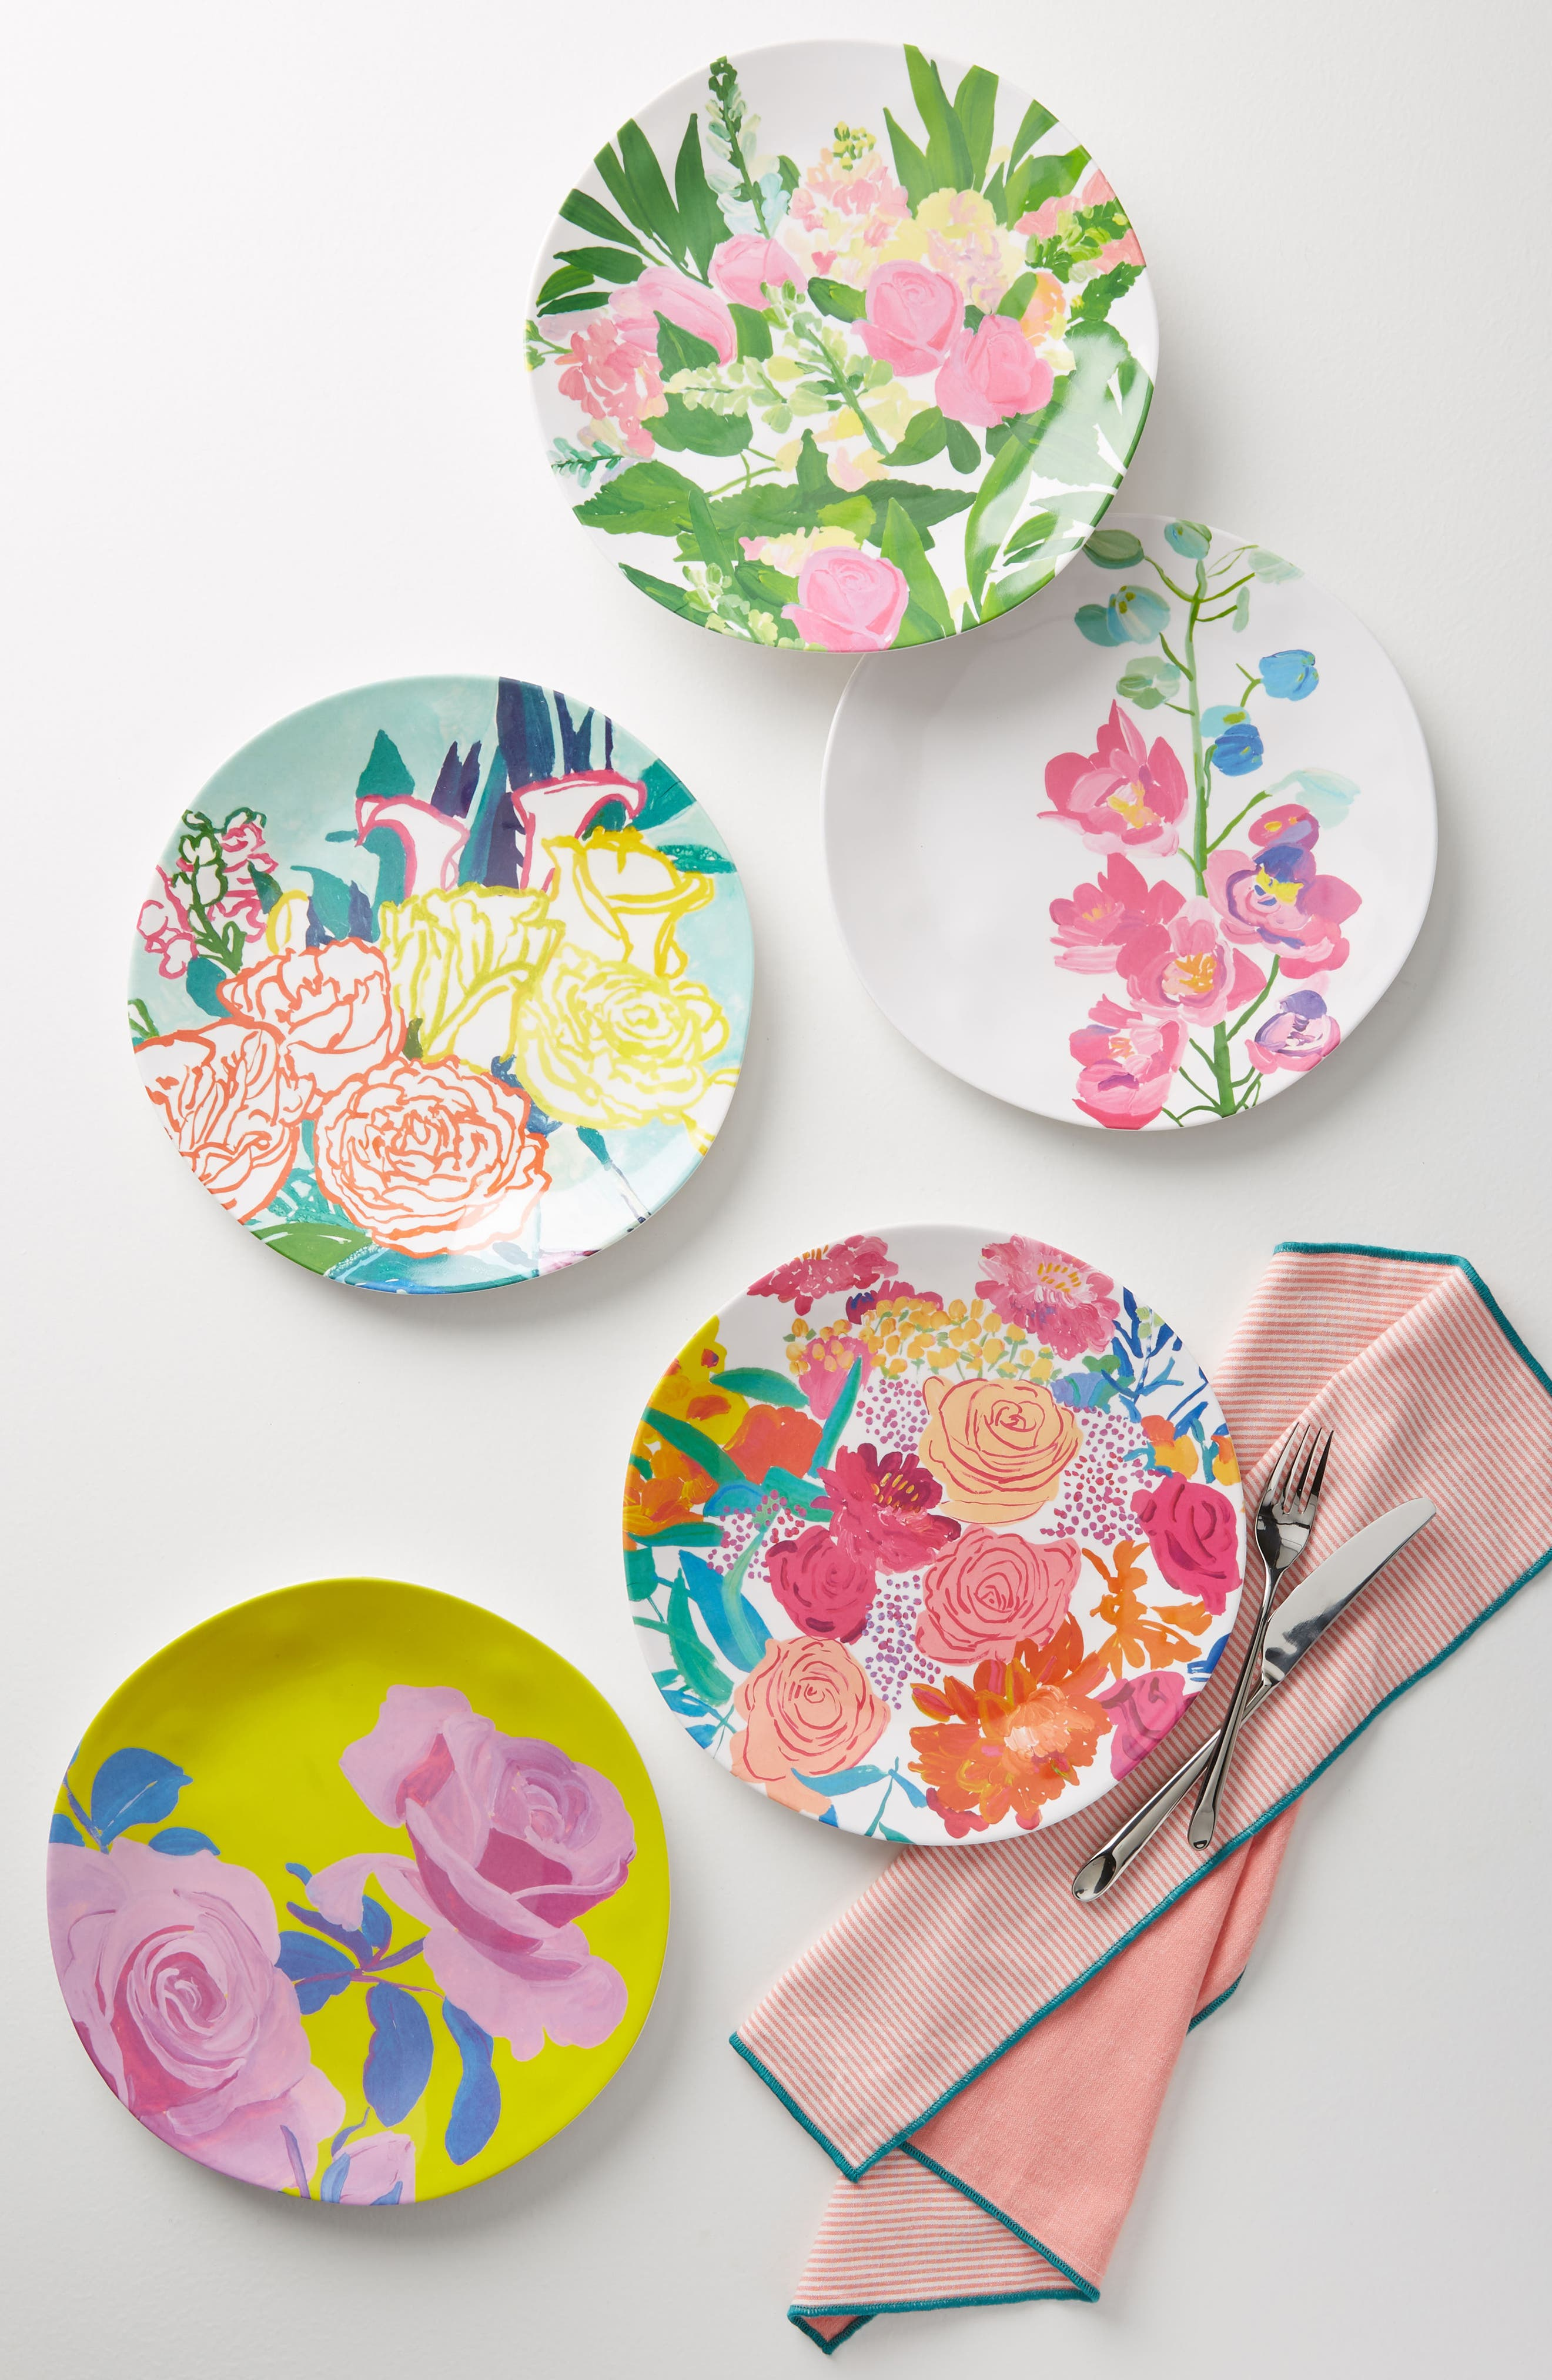 Paint + Petals Melamine Plate,                         Main,                         color, Turquoise